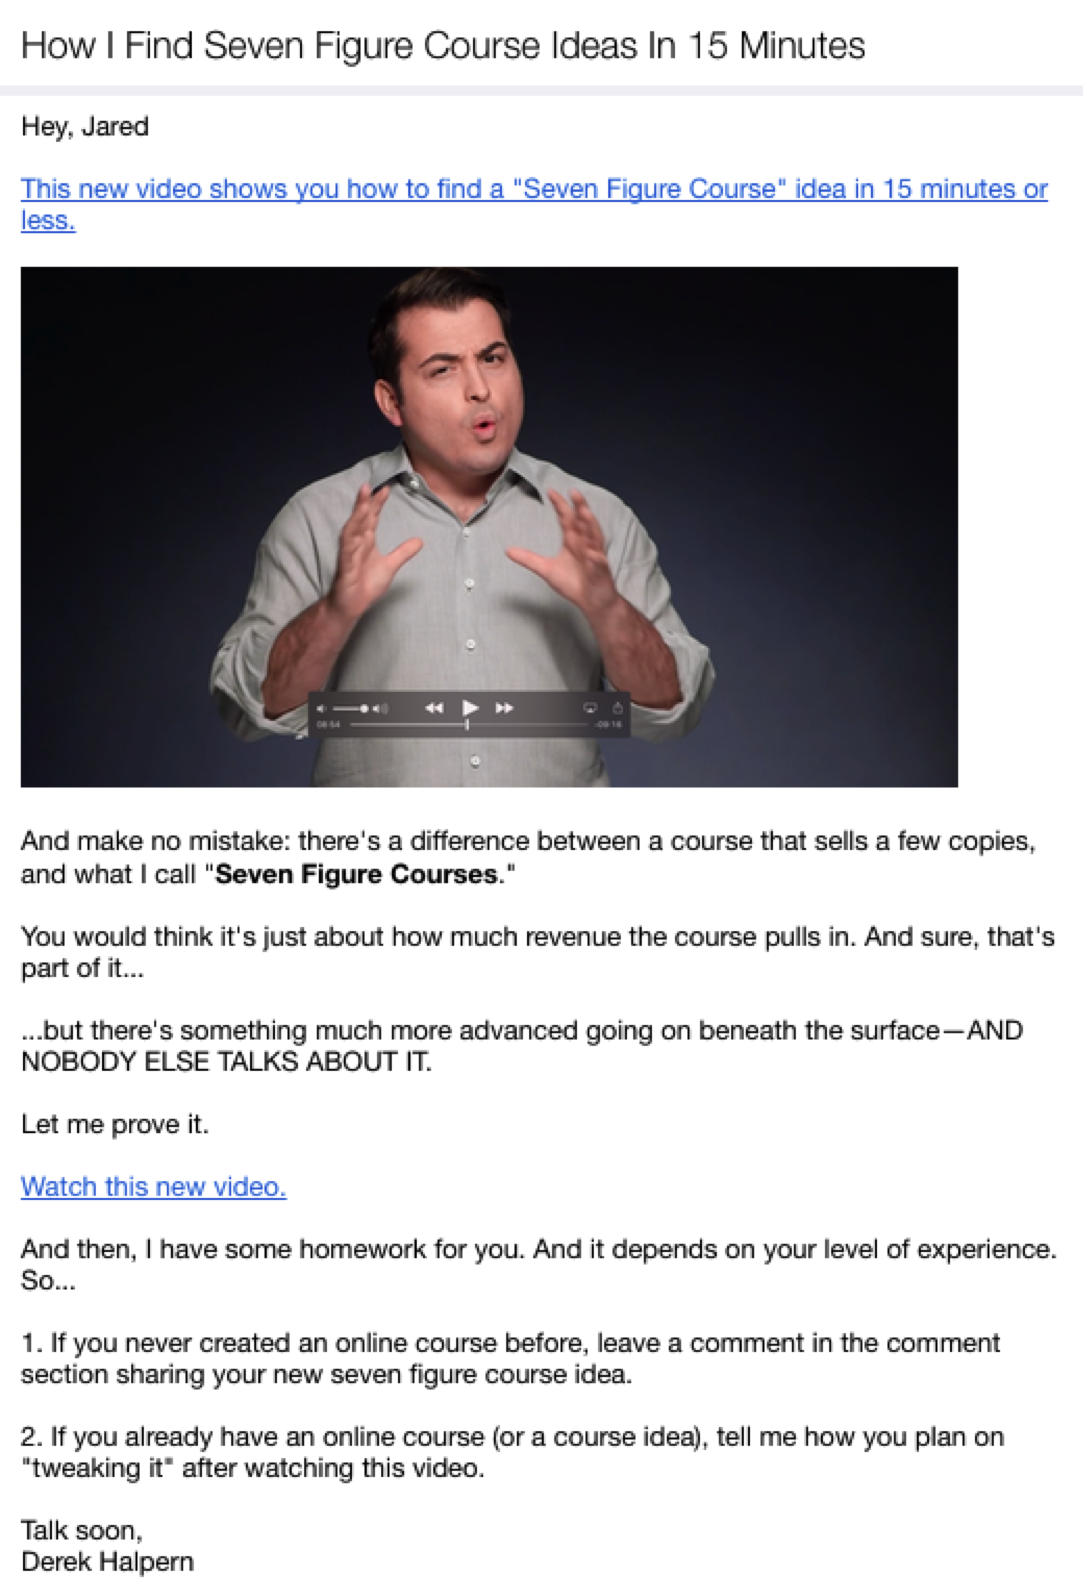 email example 2.png